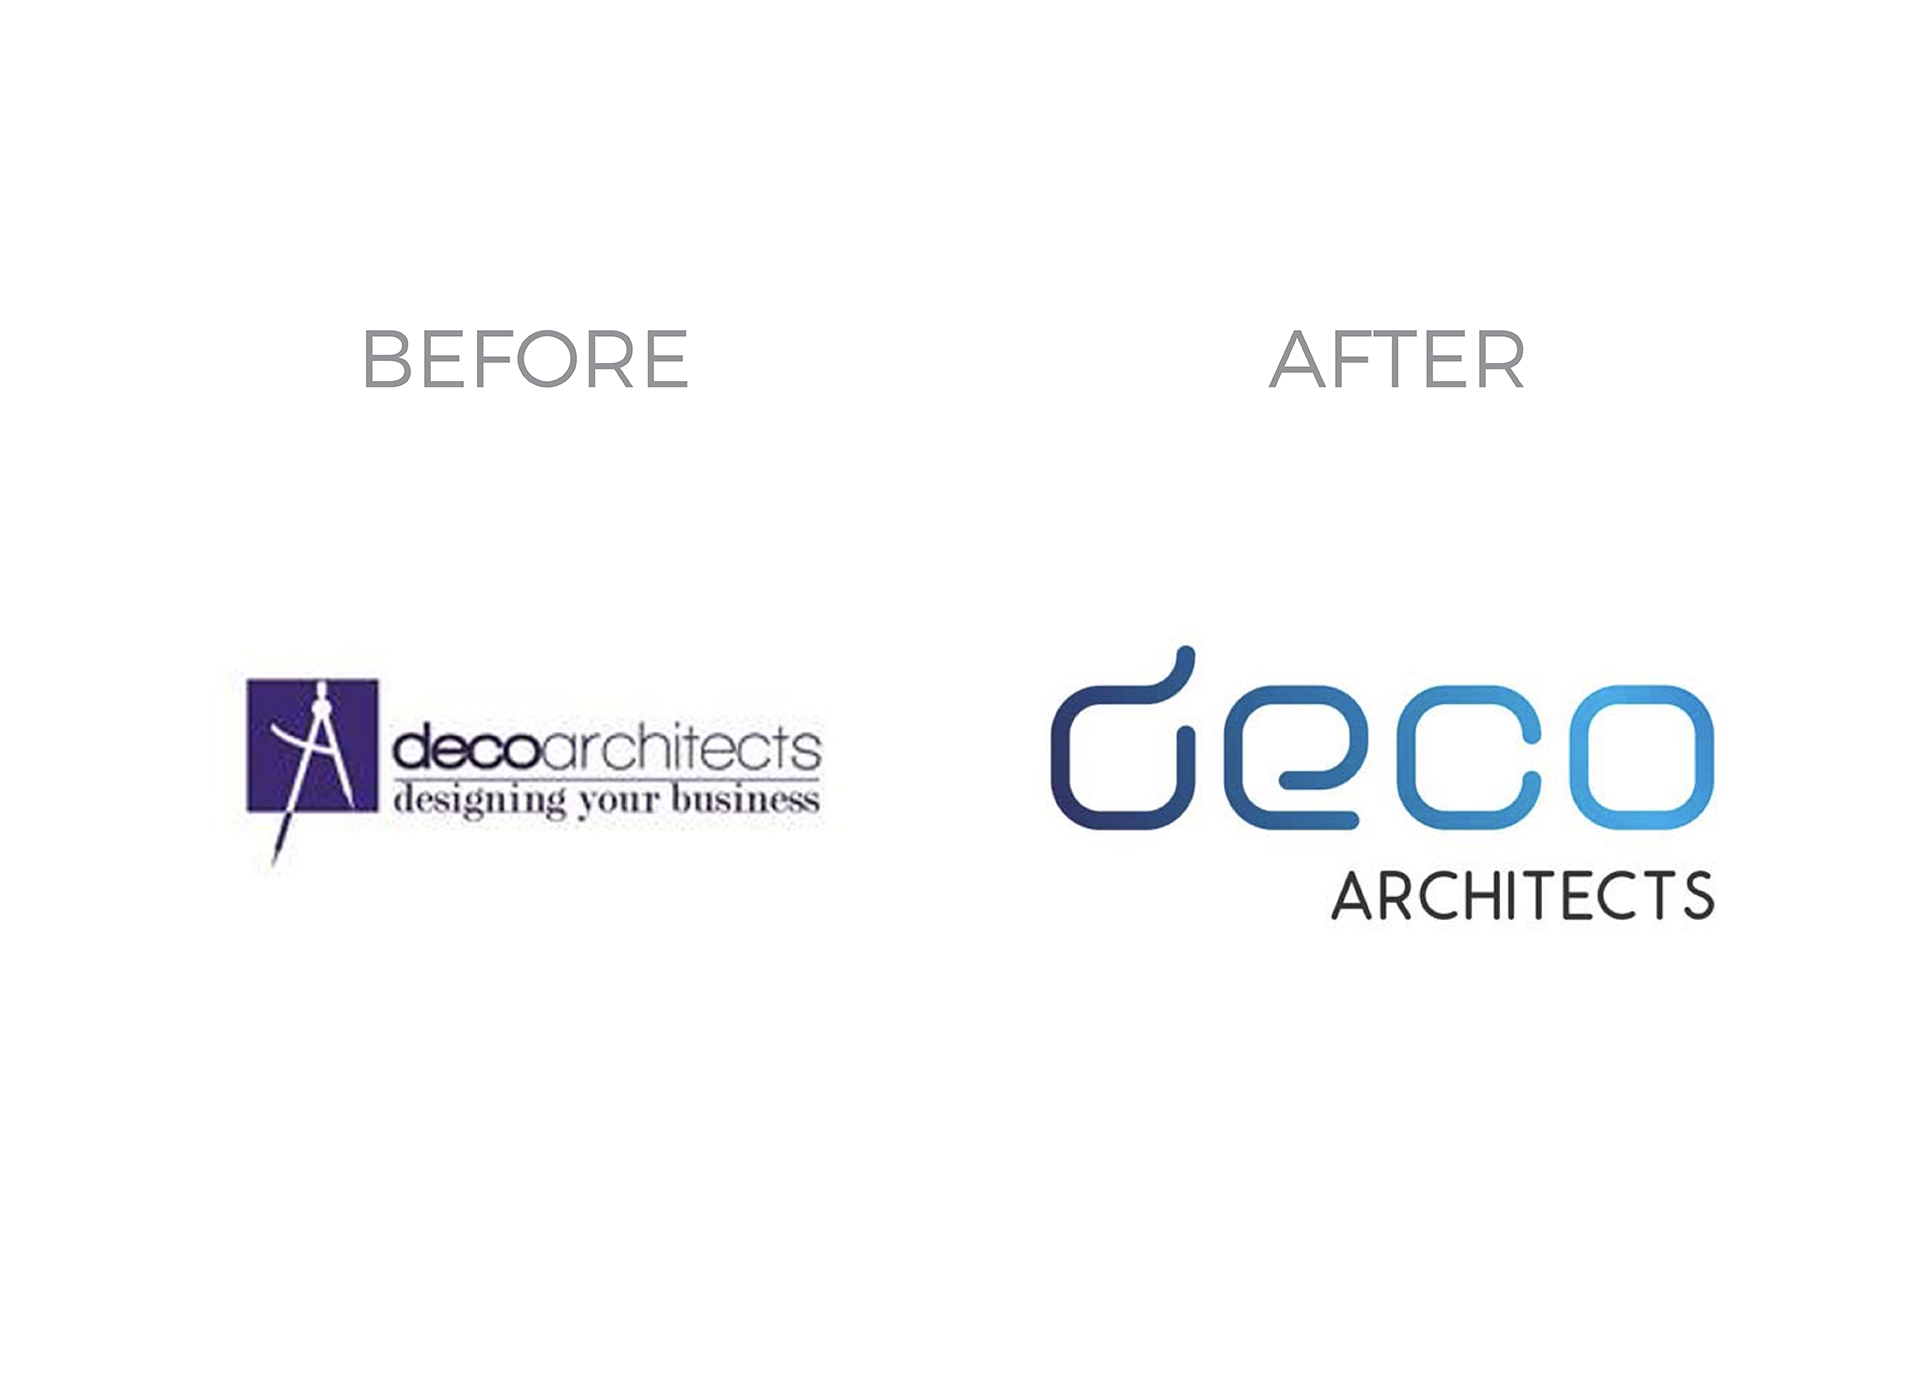 deco architects rebranding logo before and after